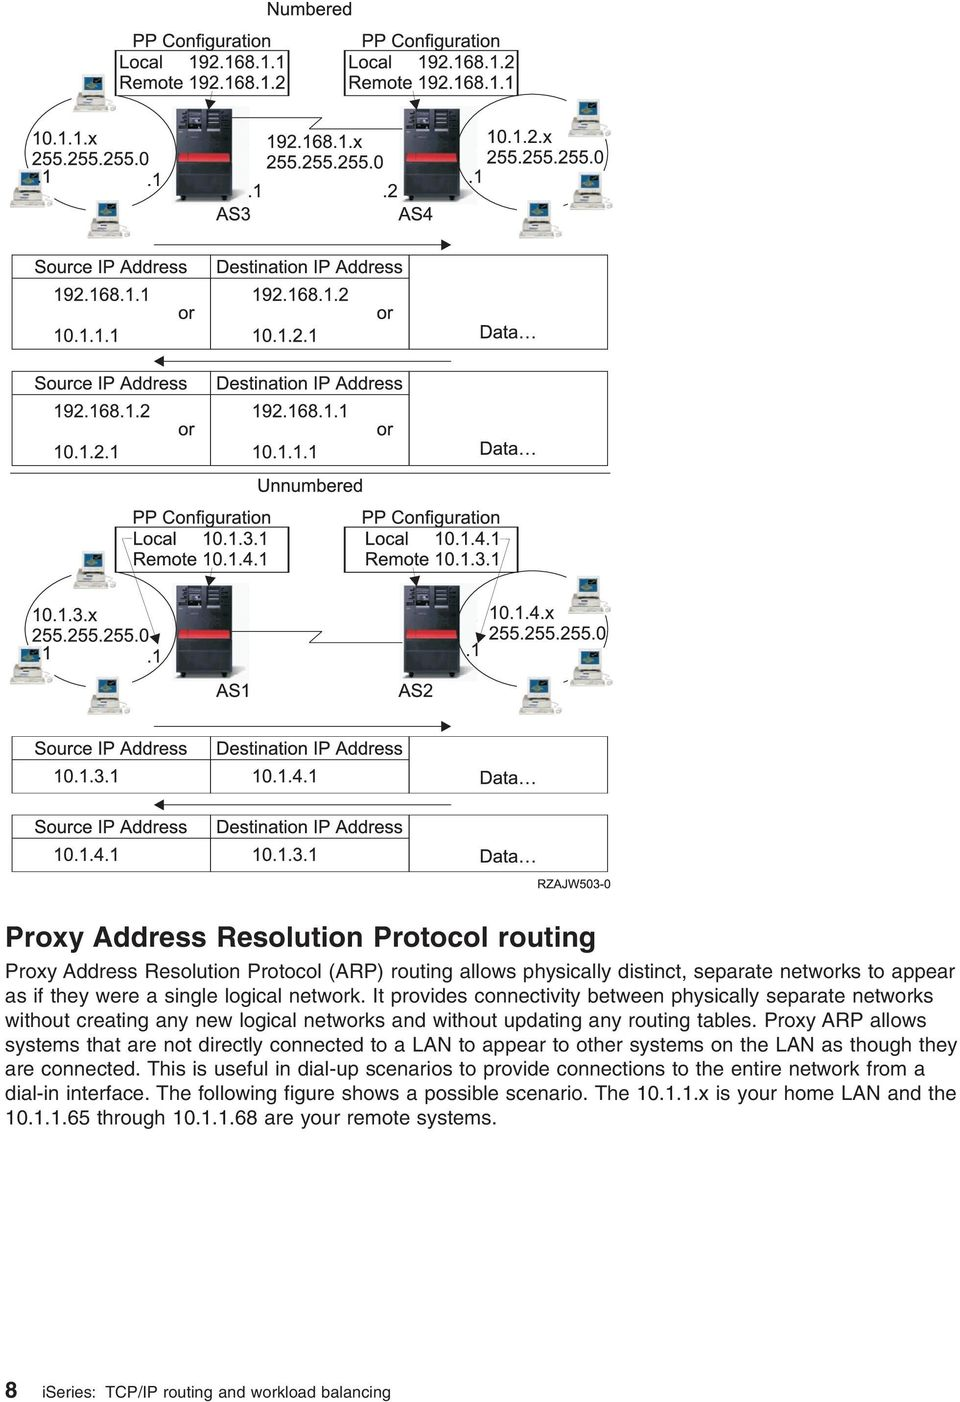 Proxy ARP allows systems that are not directly connected to a LAN to appear to other systems on the LAN as though they are connected.